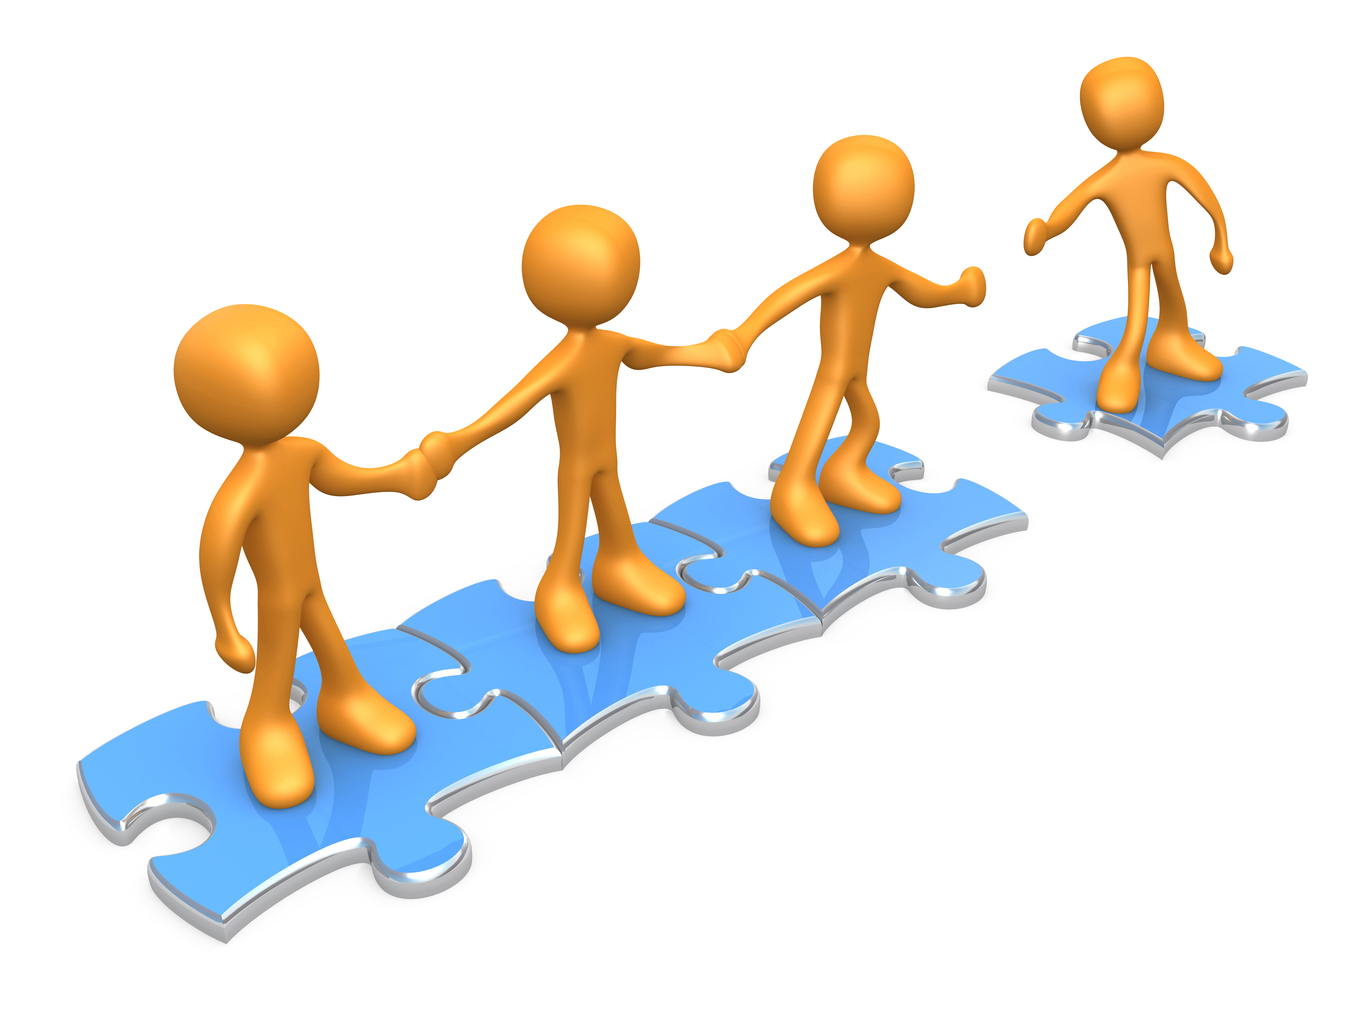 Free Teamwork Cliparts, Download Free Clip Art, Free Clip.